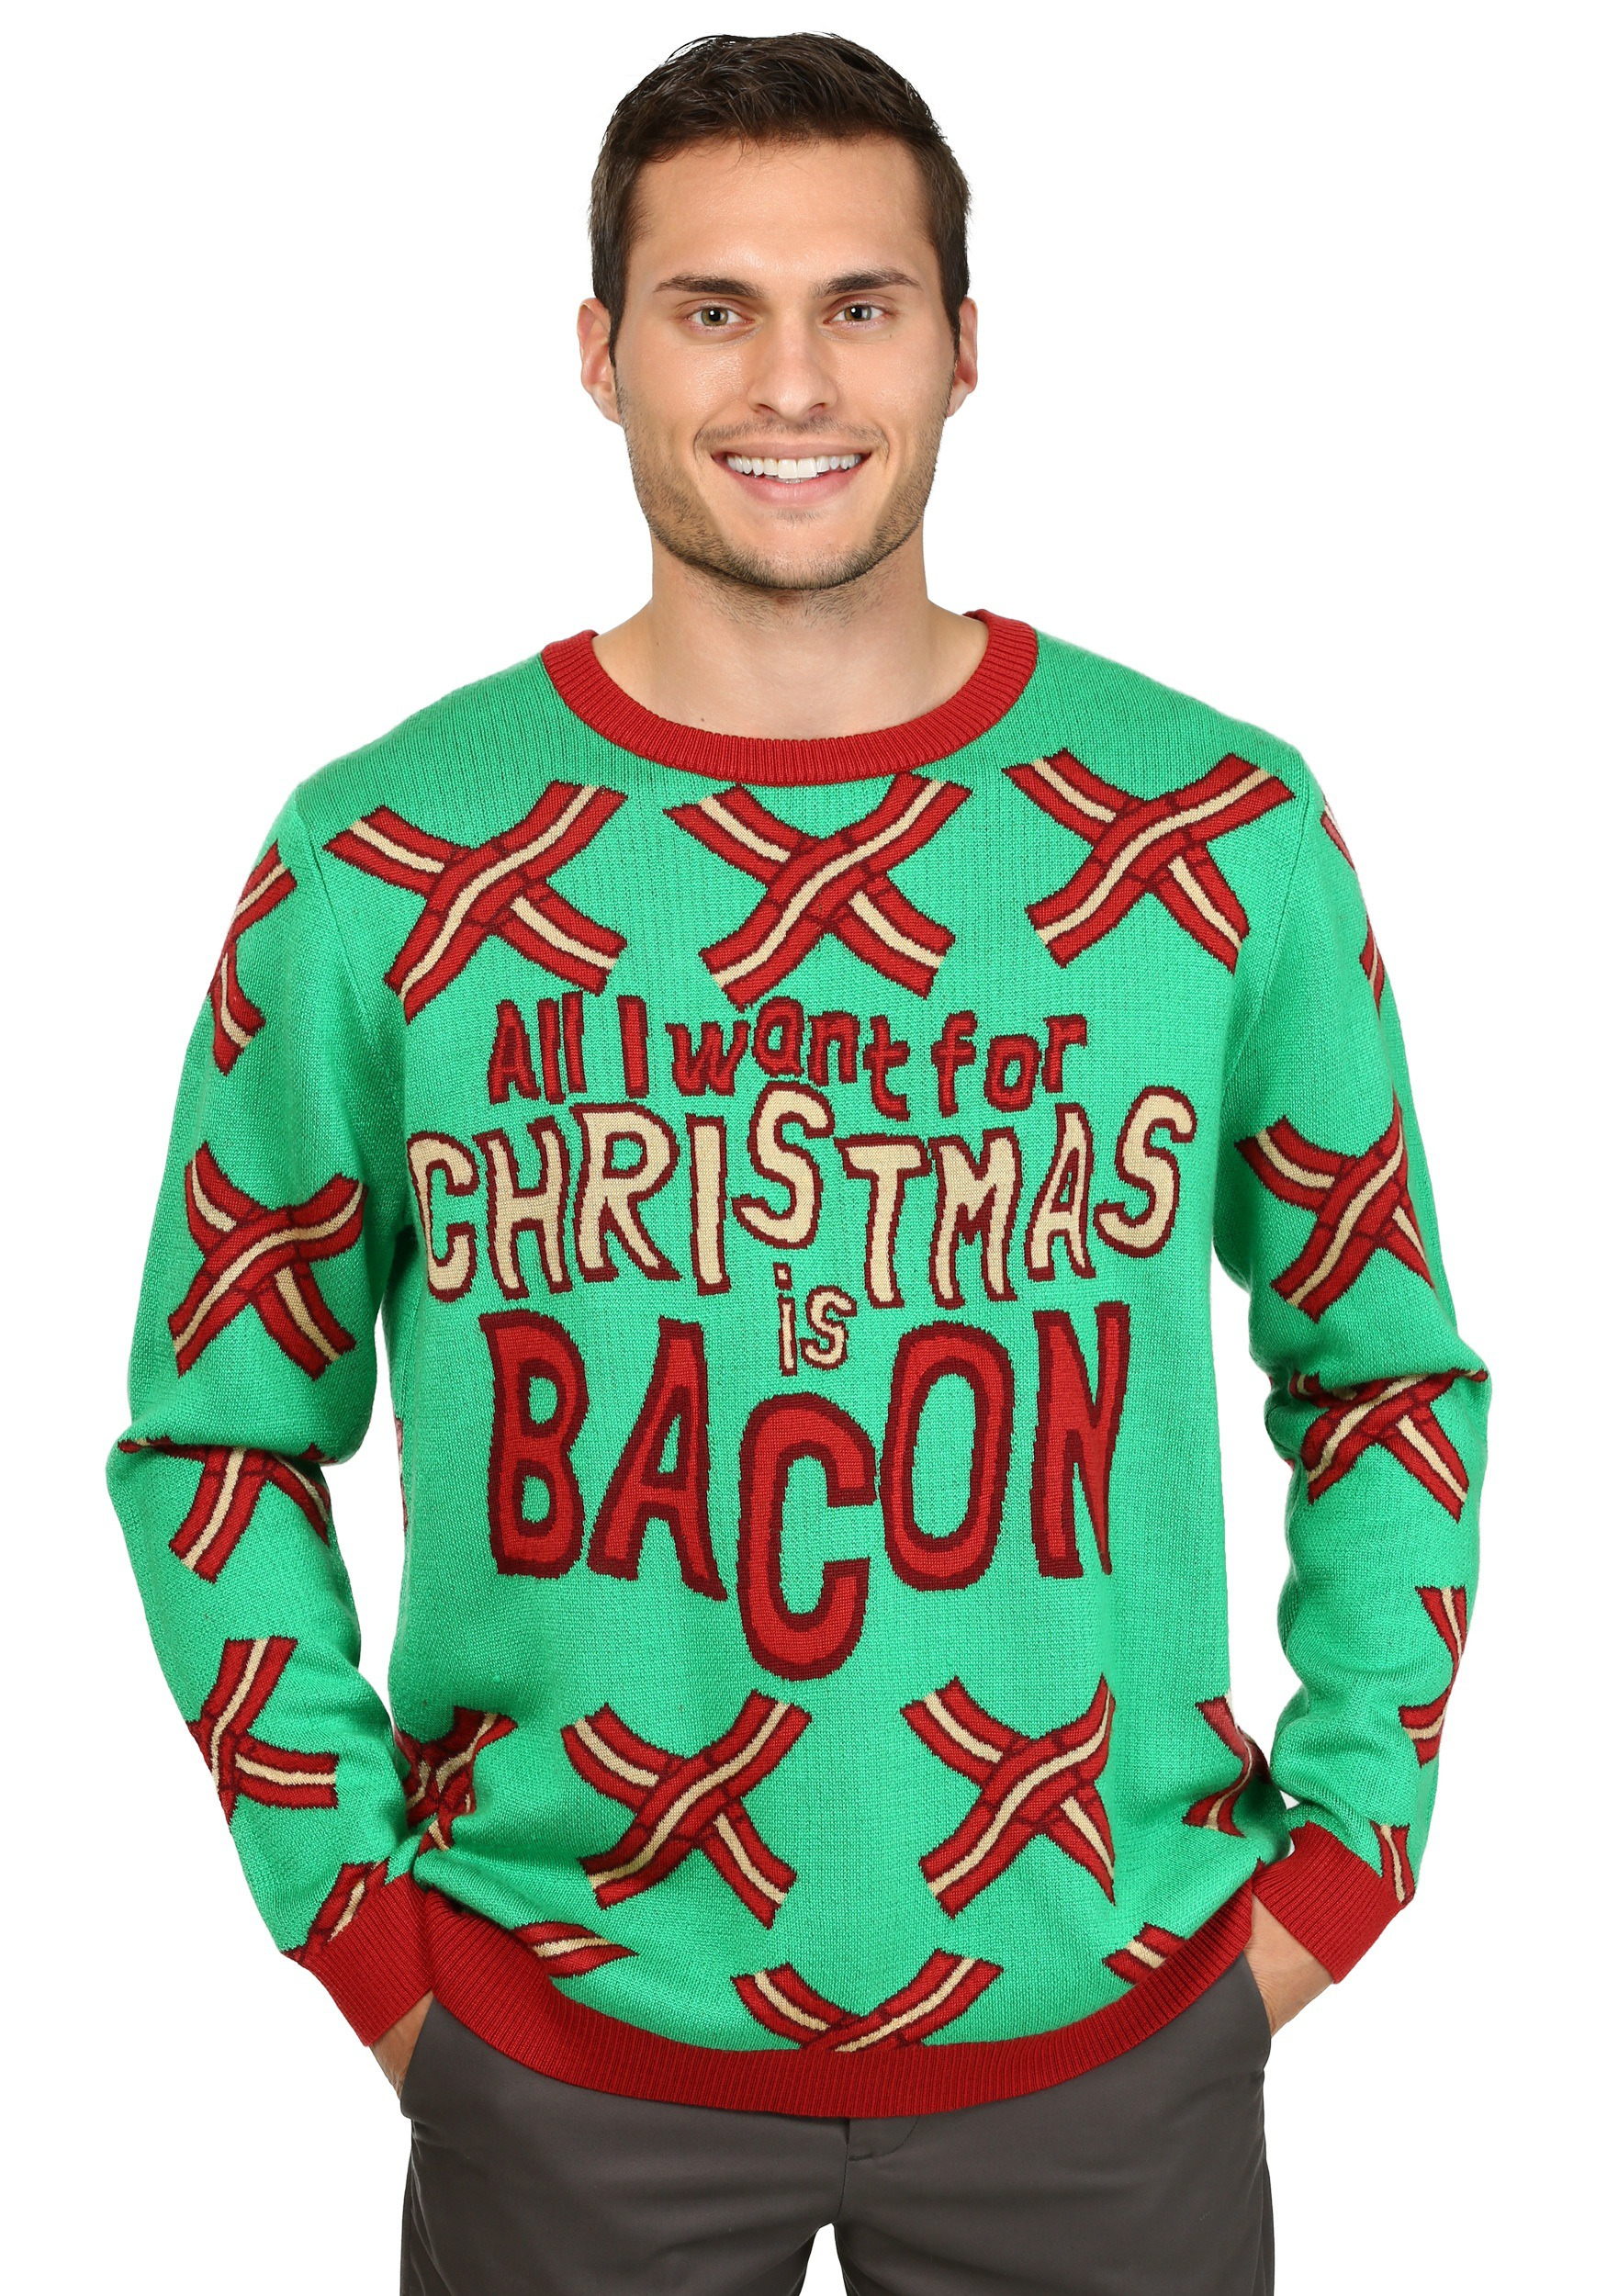 Ugly Christmas Sweaters.All I Want For Christmas Is Bacon Ugly Christmas Sweater